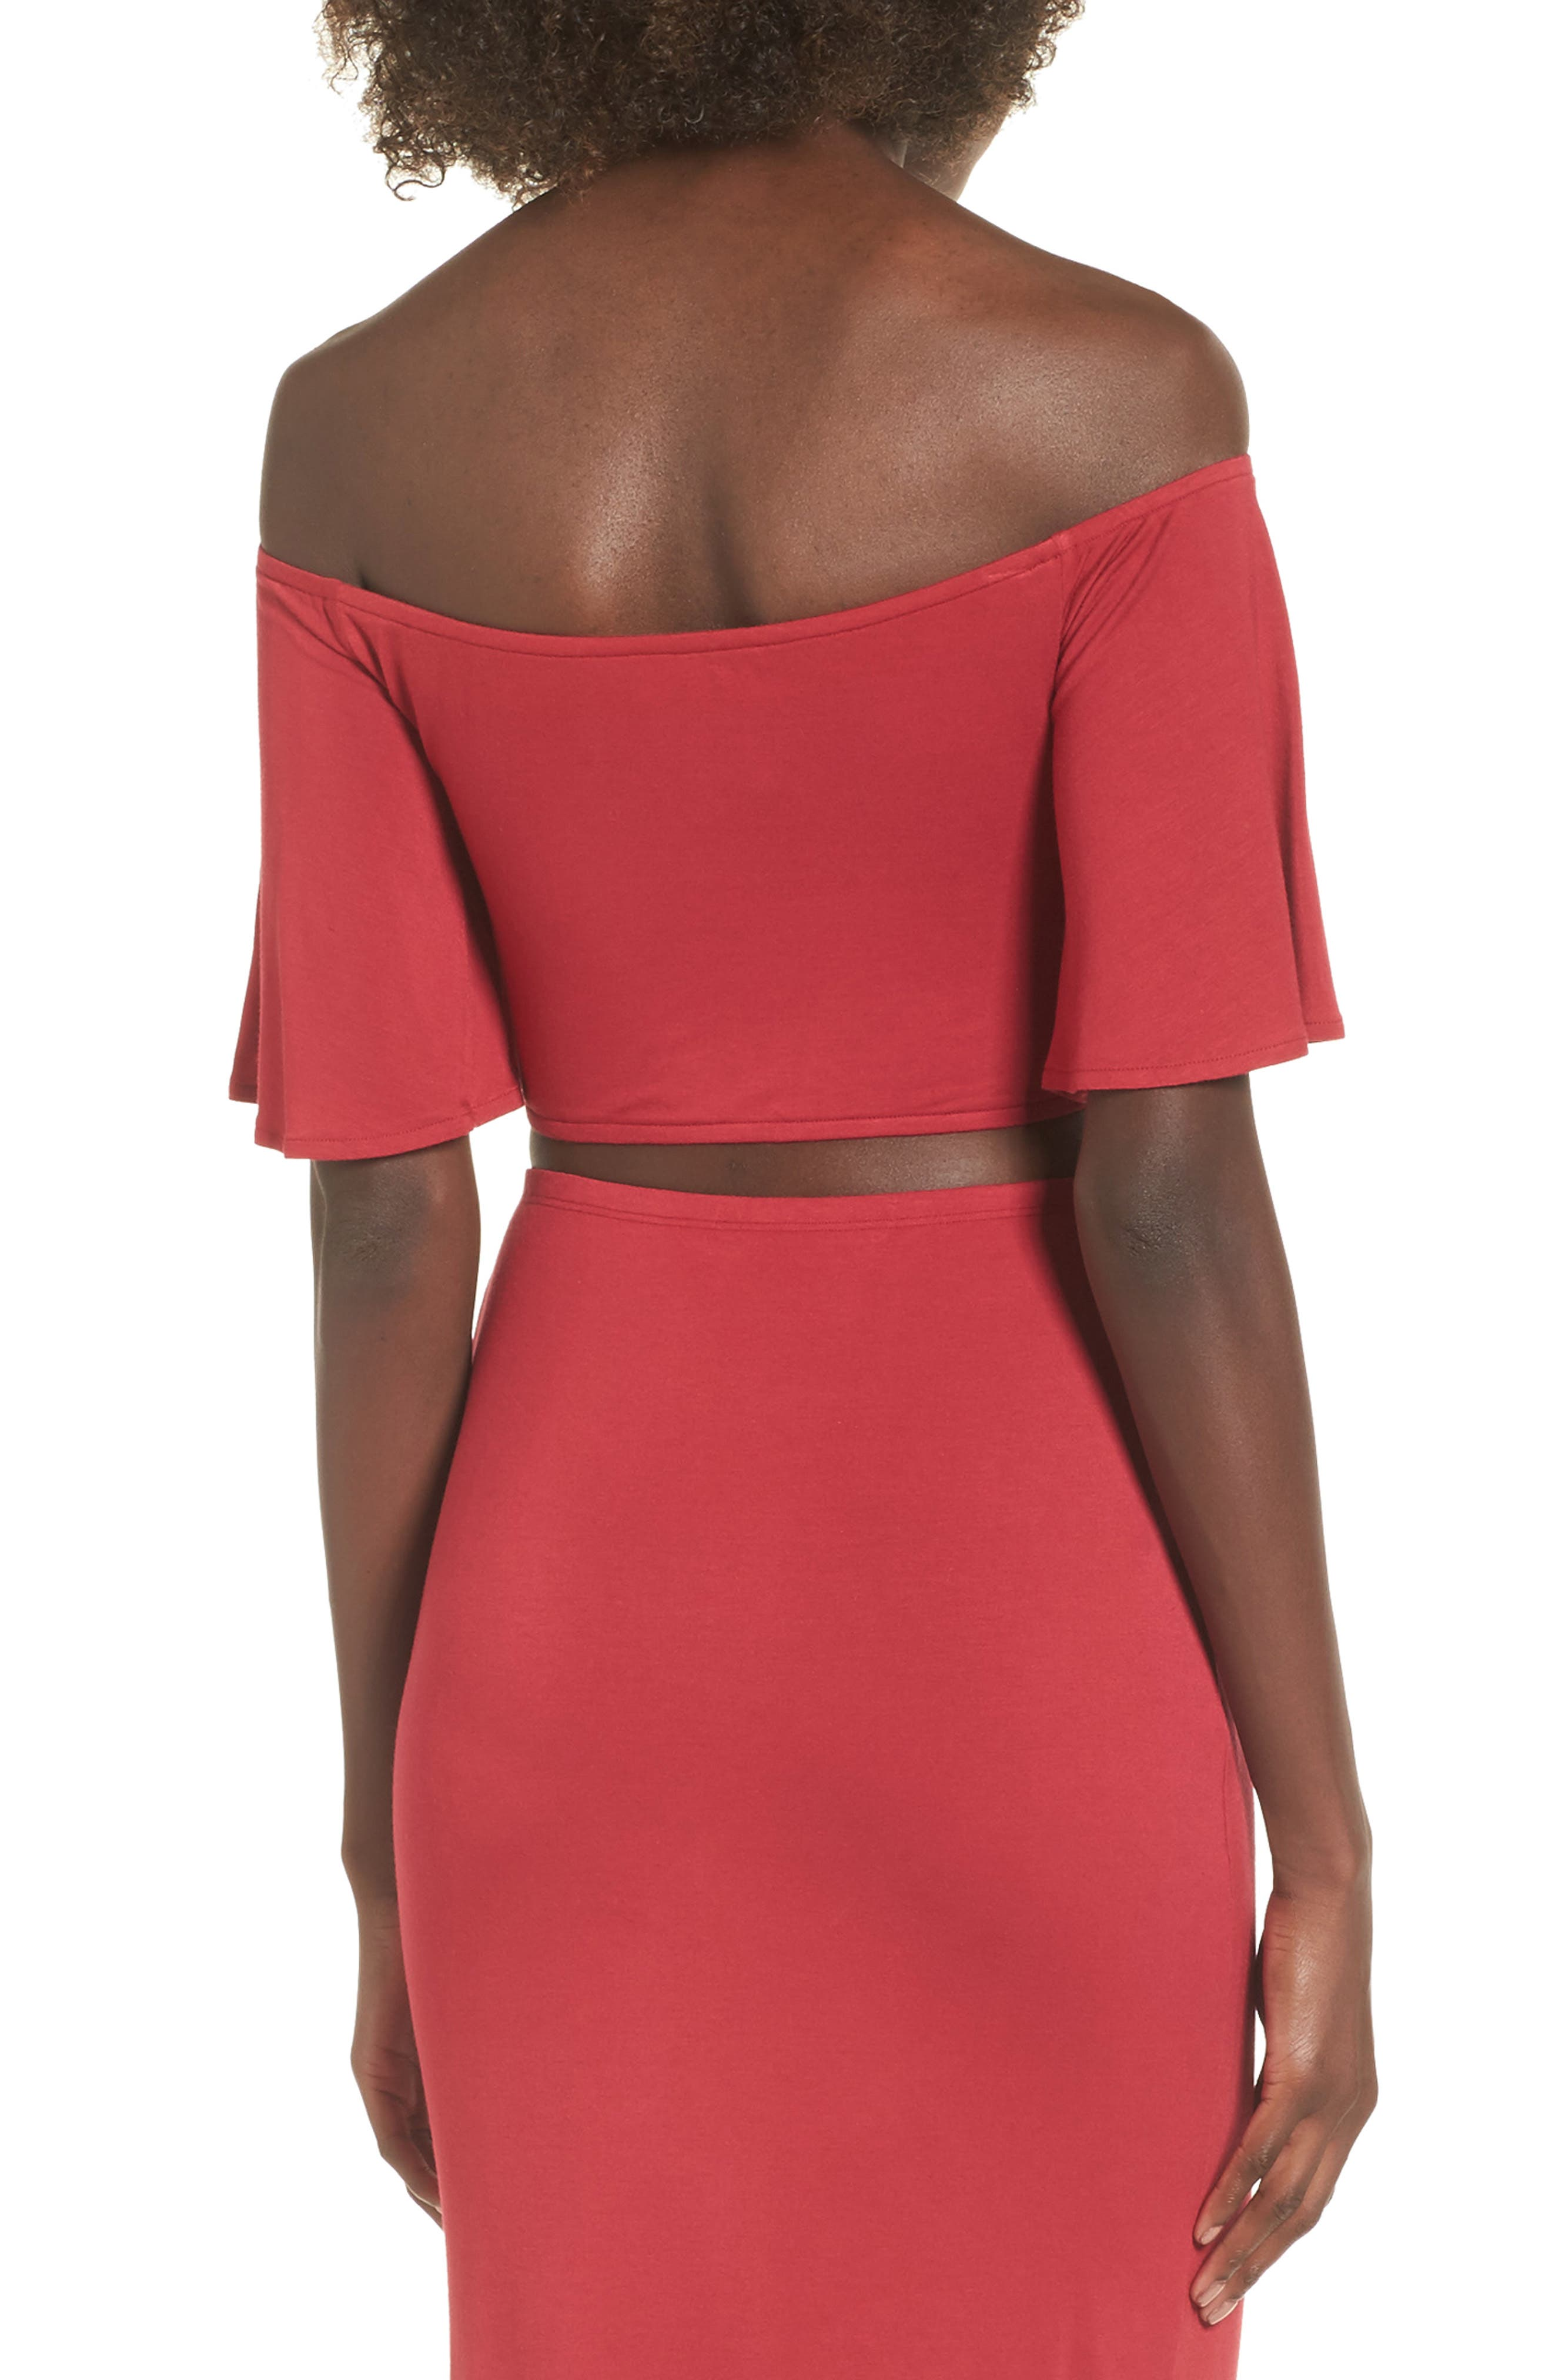 Hills Crop Top,                             Alternate thumbnail 2, color,                             Red